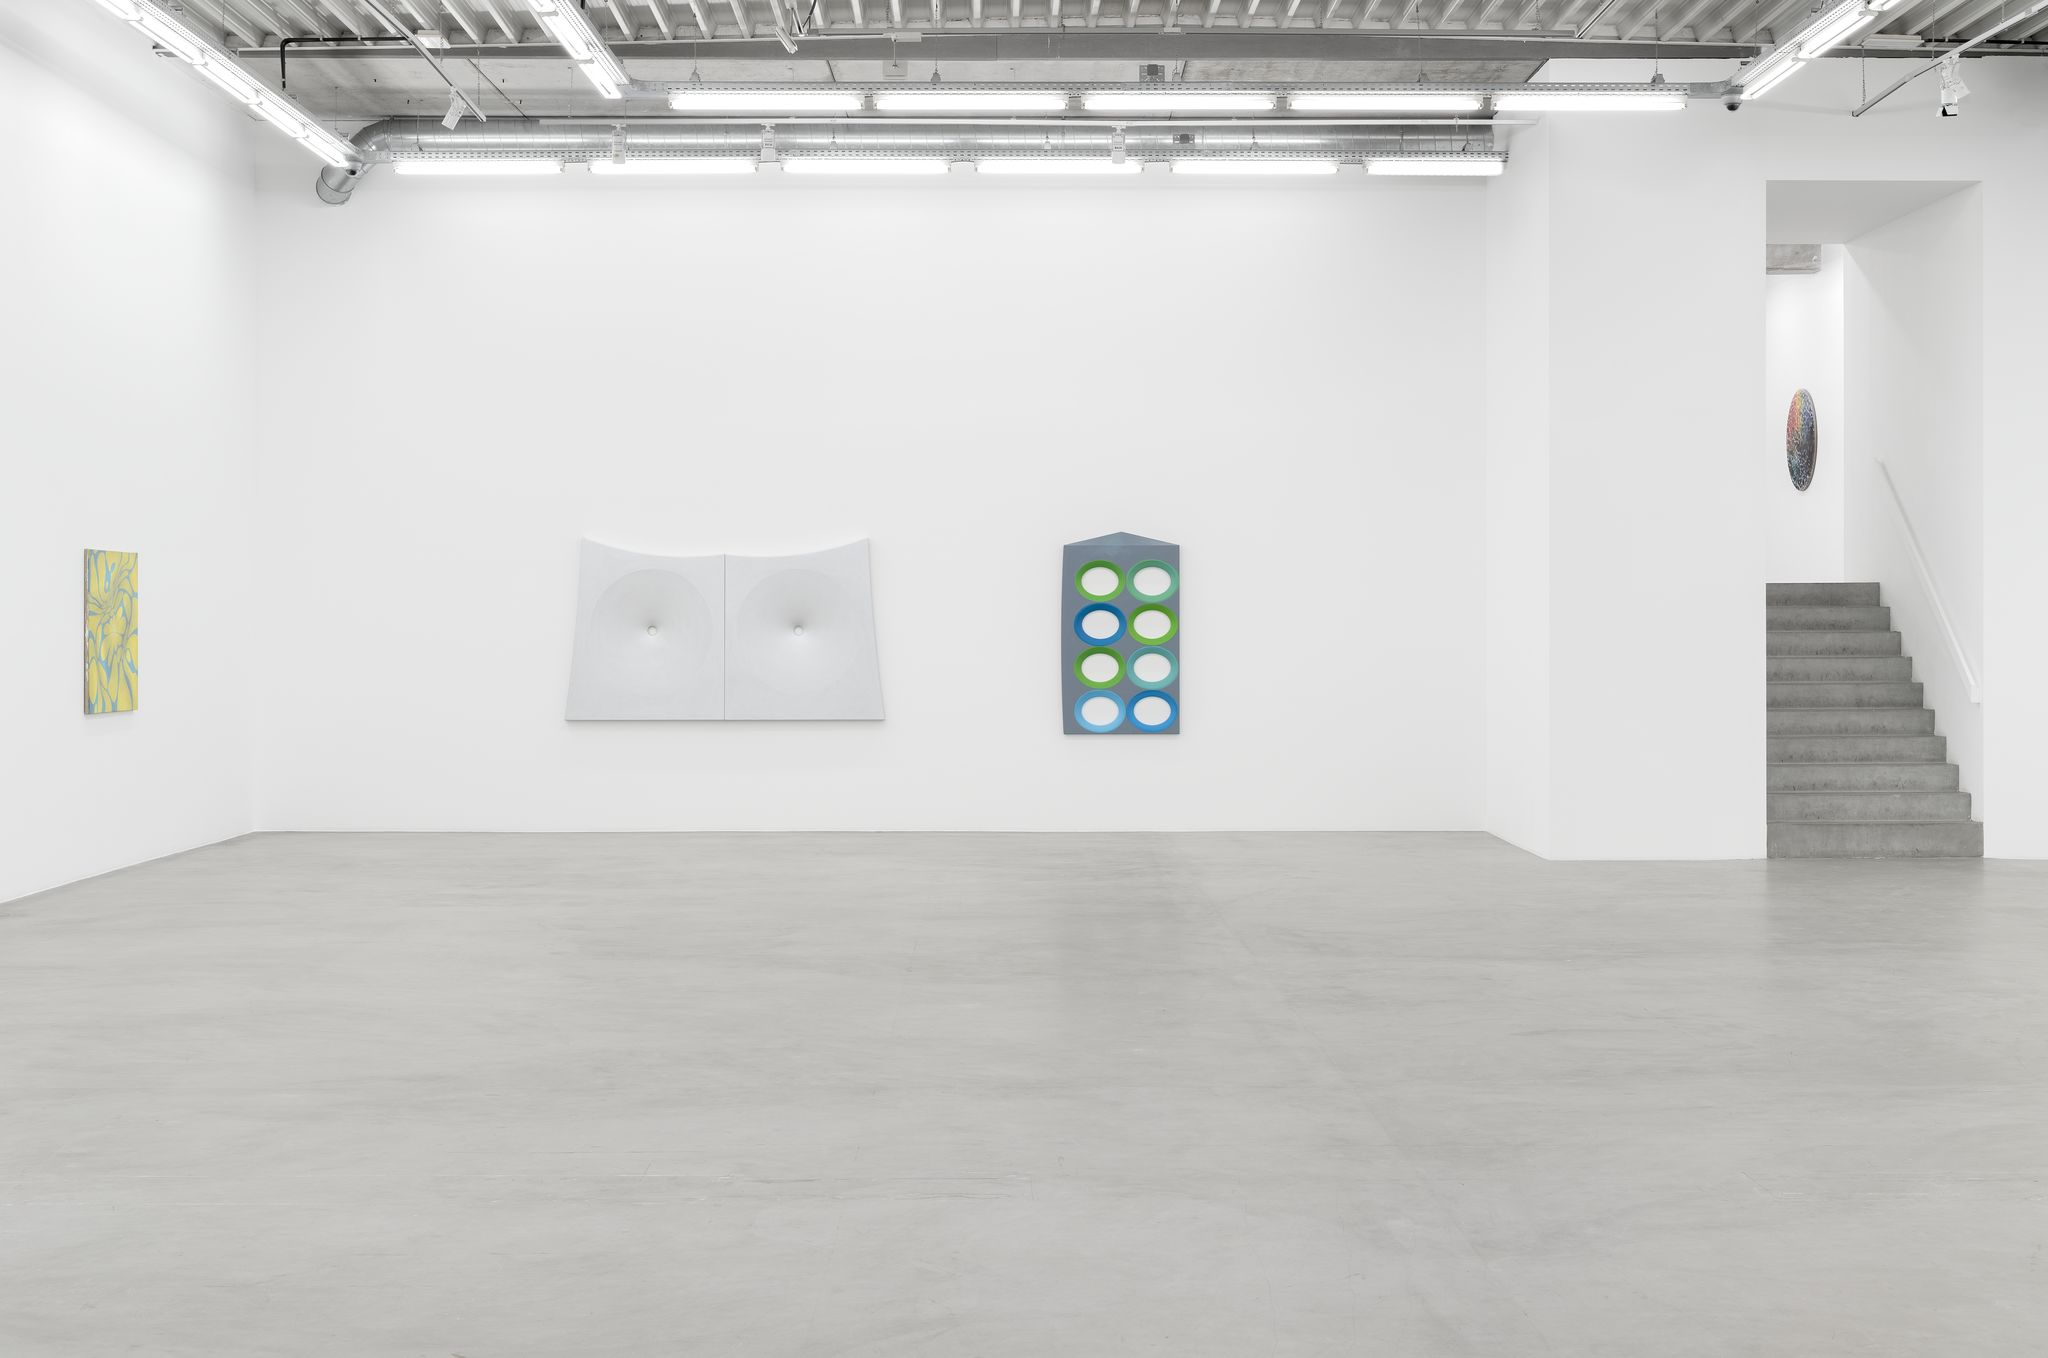 Installation View, Pink Noise, Almine Rech Brussels, January 09 – February 01, 2020